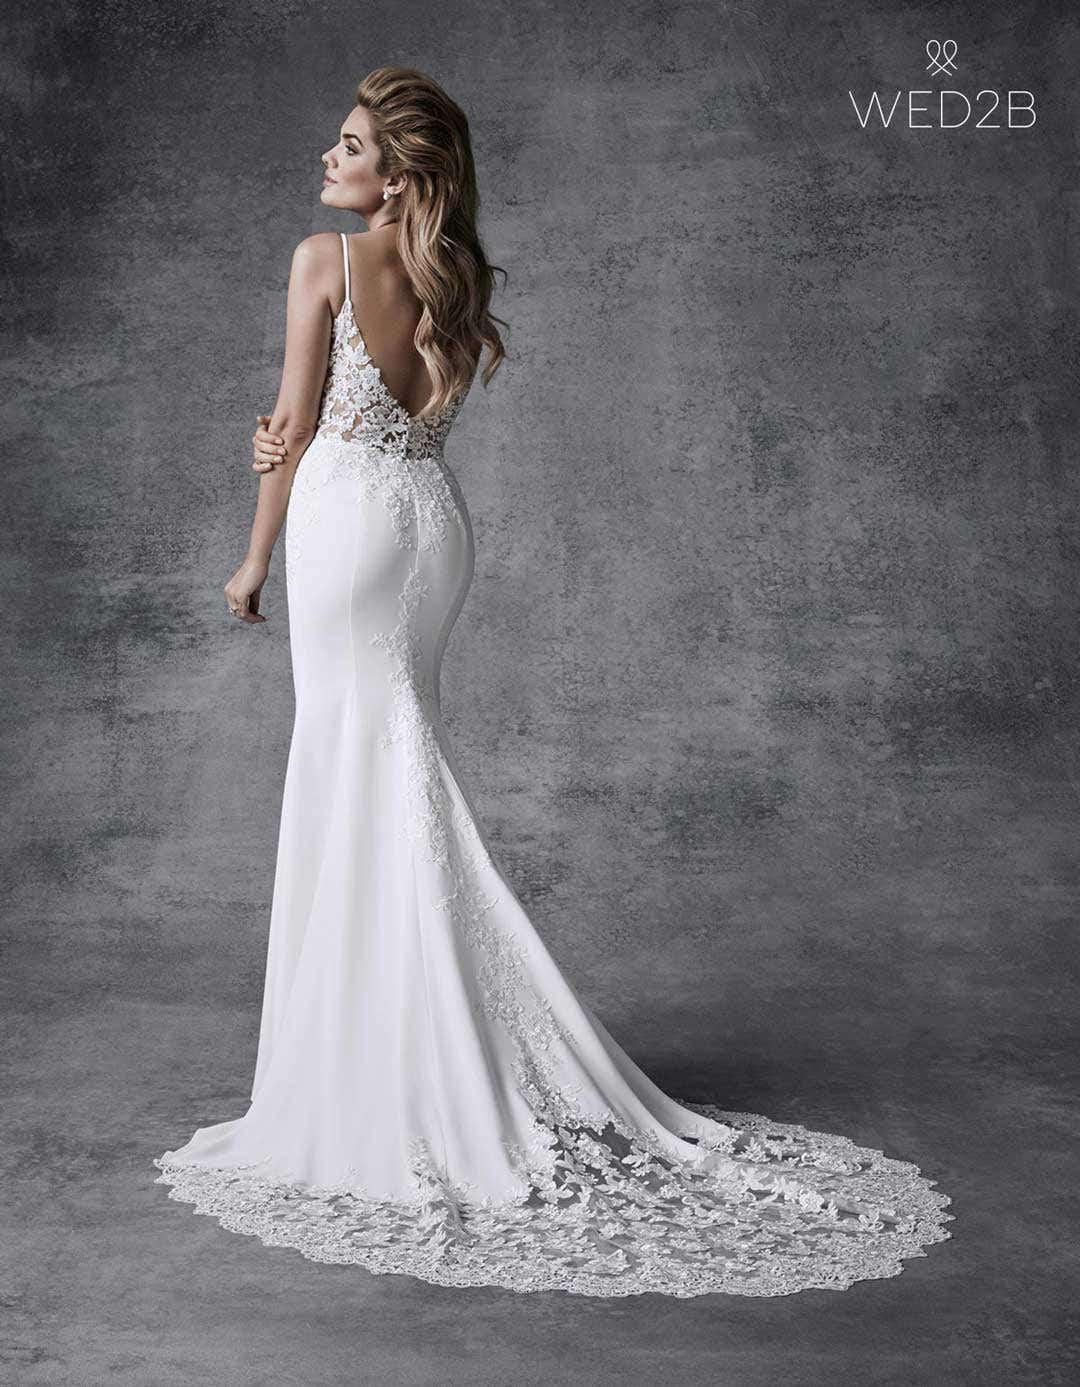 Destination wedding dress - Hayden